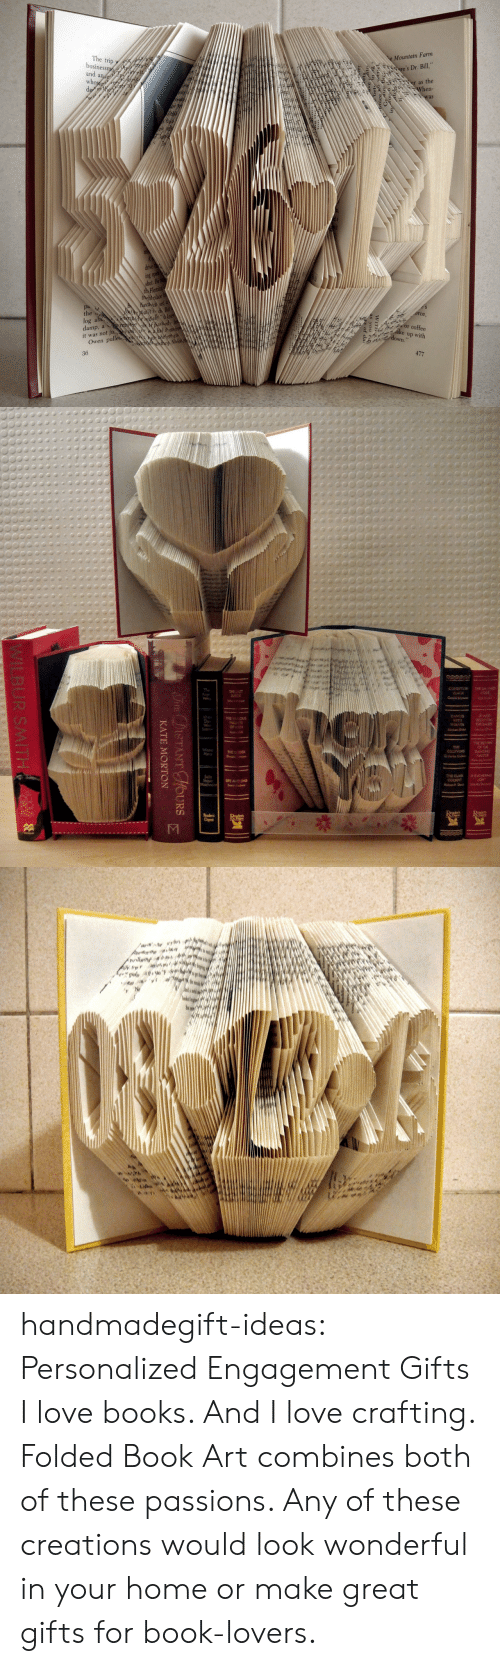 """Book Lovers: Mountain Farm  'sDr. Bill""""  as the  The trip  usiness  and a  en-  ing  He  the  log ab  damp, a  it was not ju.  ally  r coffee  down uP with  Owen pulle  36   ISTANT HOURS  KATE MORTON  WILBUR SMITH handmadegift-ideas:     Personalized Engagement Gifts     I love books. And I love crafting. Folded Book Art combines both of these passions. Any of these creations would look wonderful in your home or make great gifts for book-lovers."""